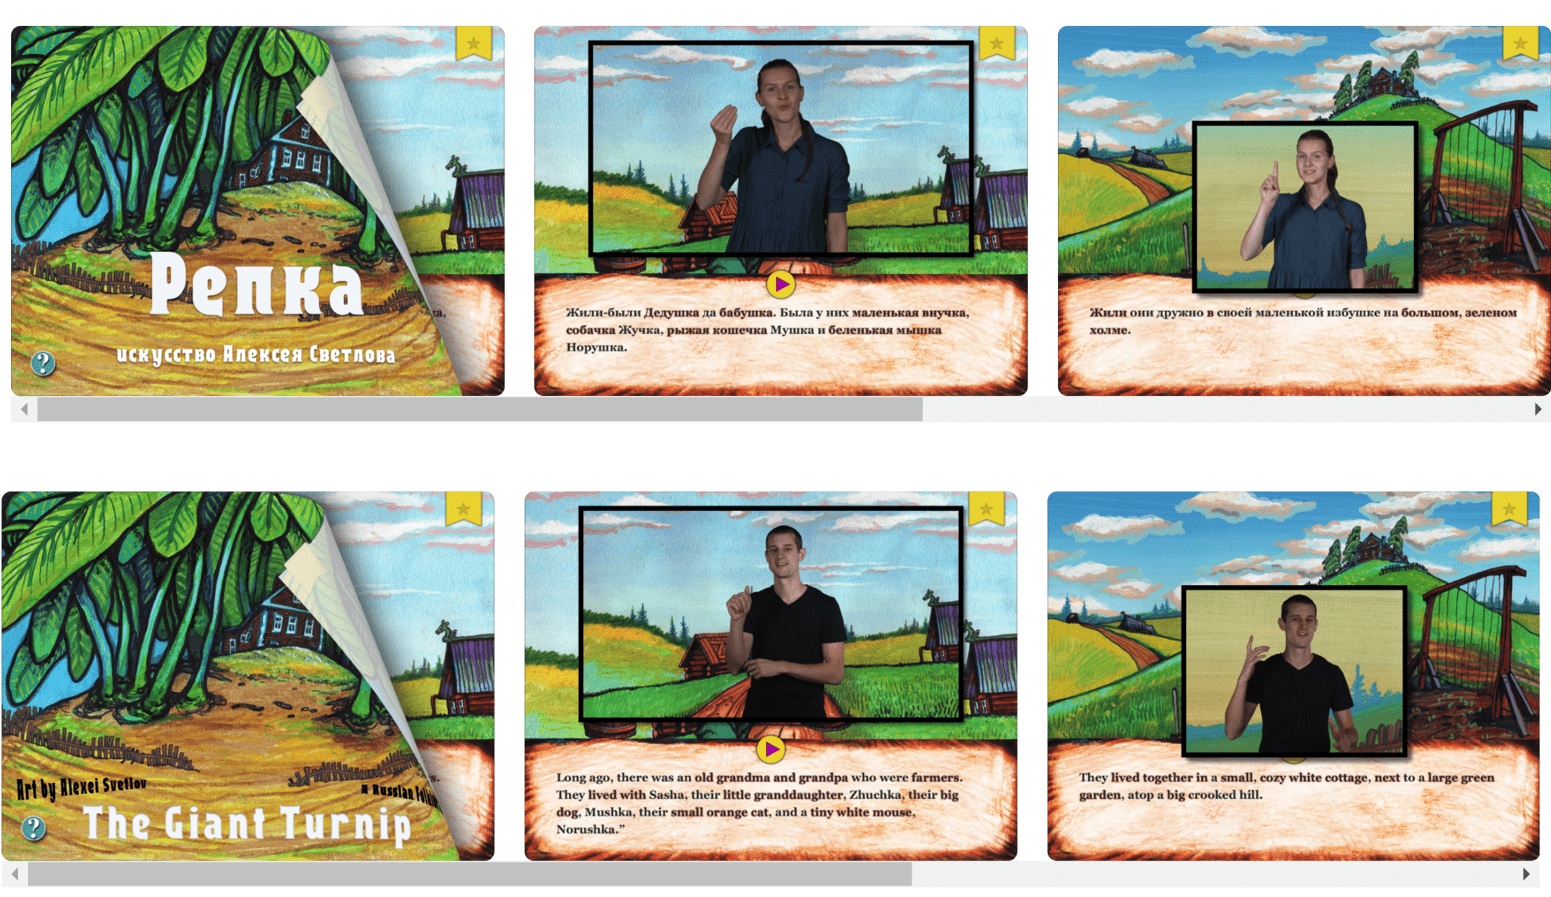 """Image shows screen shots of the cover and the first two pages of the digital storybook """"The Giant Turnip"""" in both Russian and English. The first two pages of the story book show videos that translate the English or Russian text into American Sign Language or Russian Sign Language."""